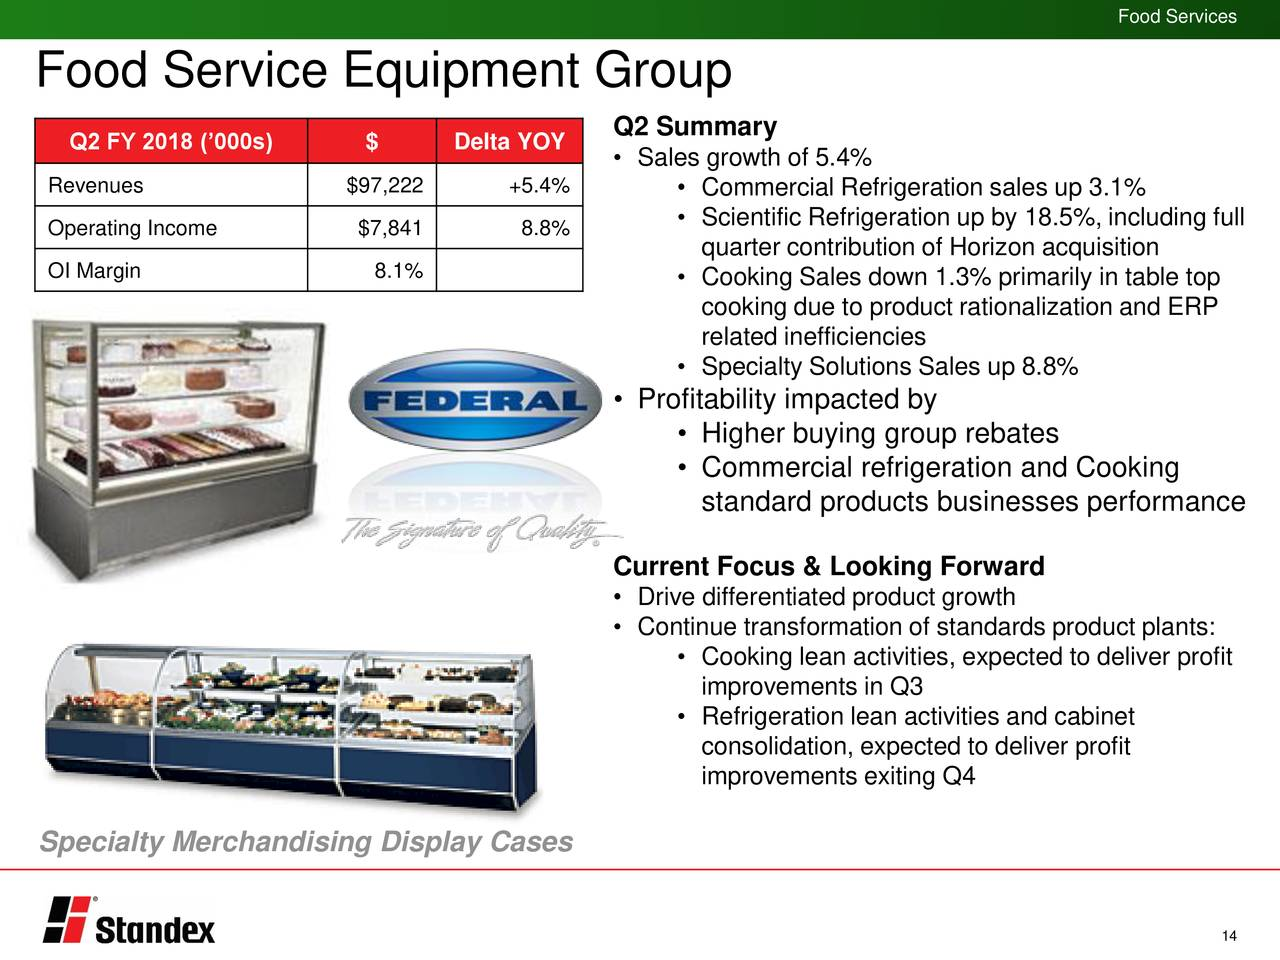 Standex Food Service Equipment Group